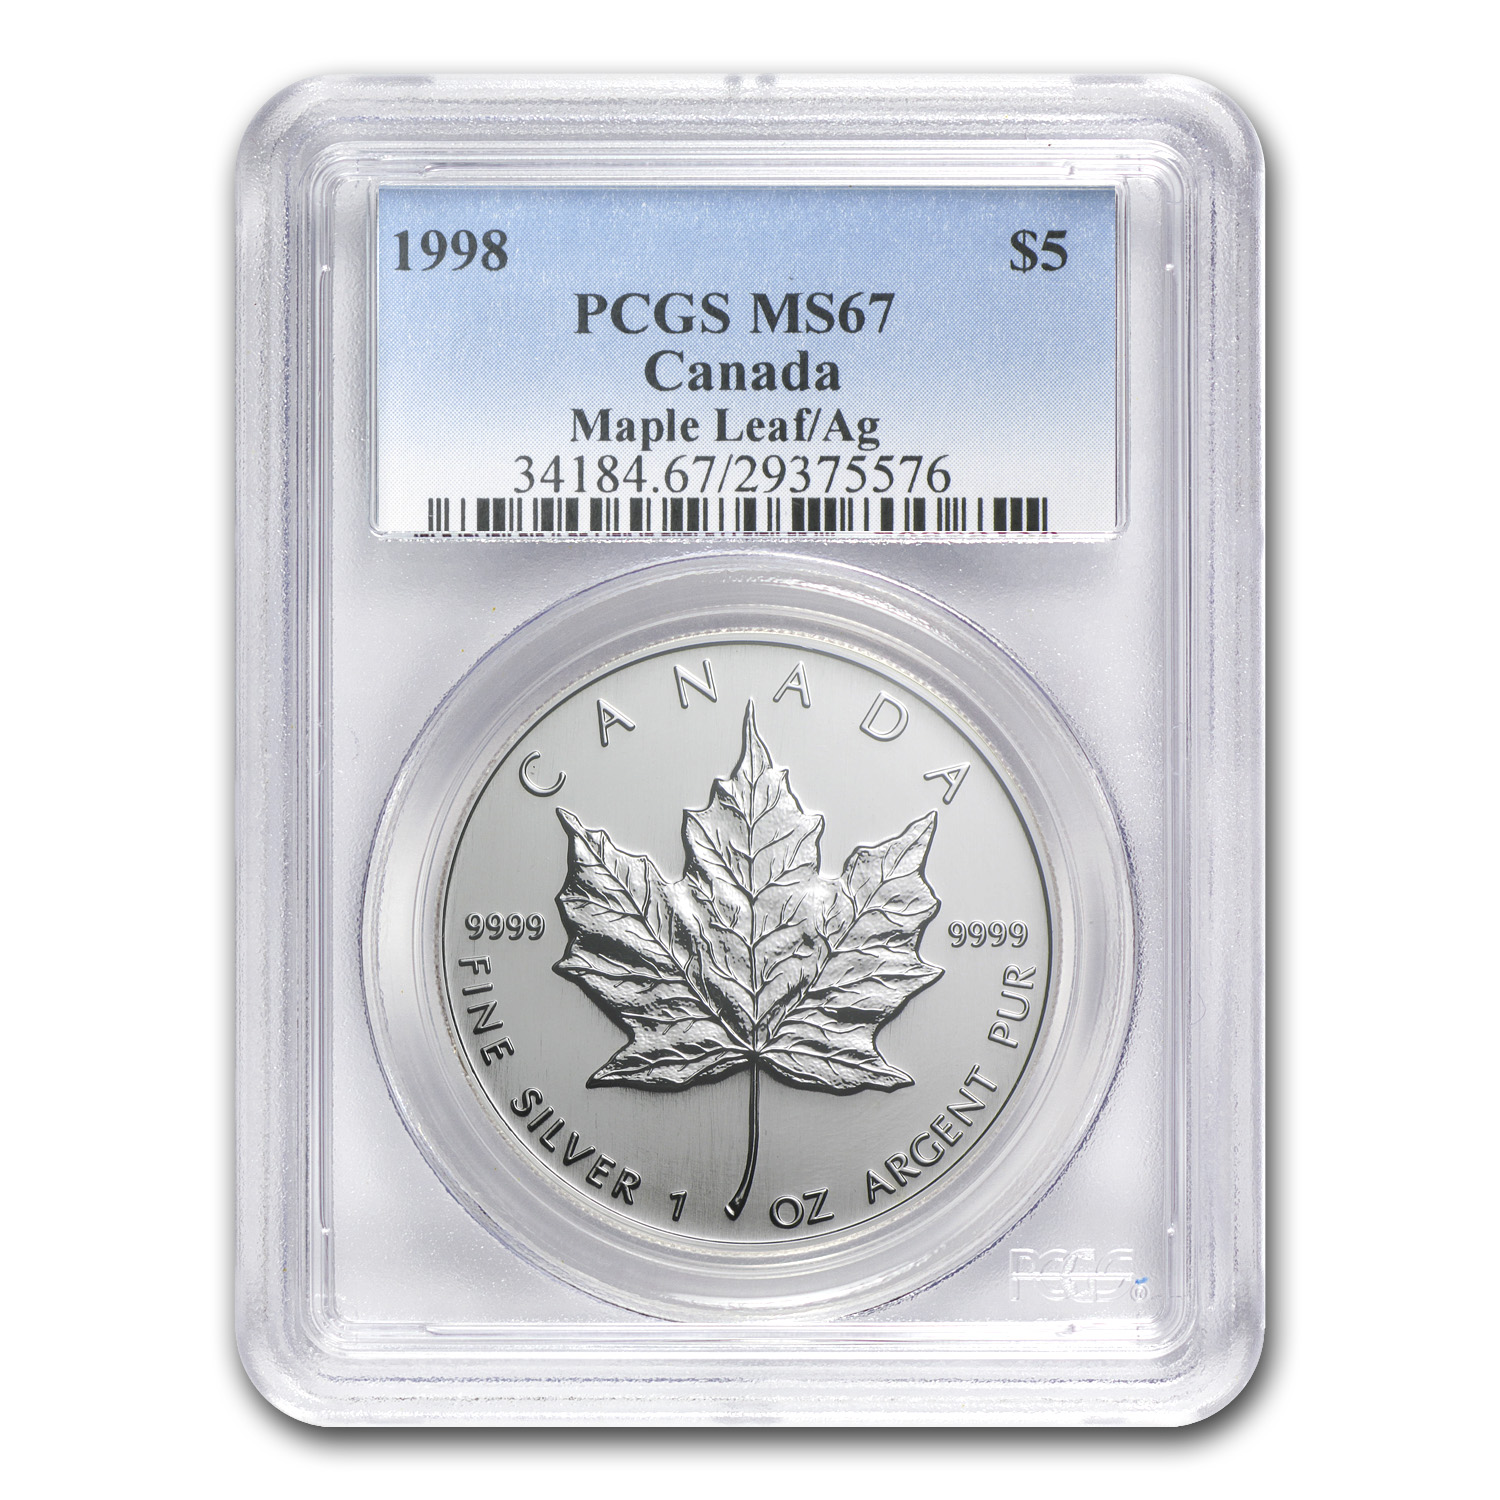 1998 Canada 1 oz Silver Maple Leaf MS-67 PCGS